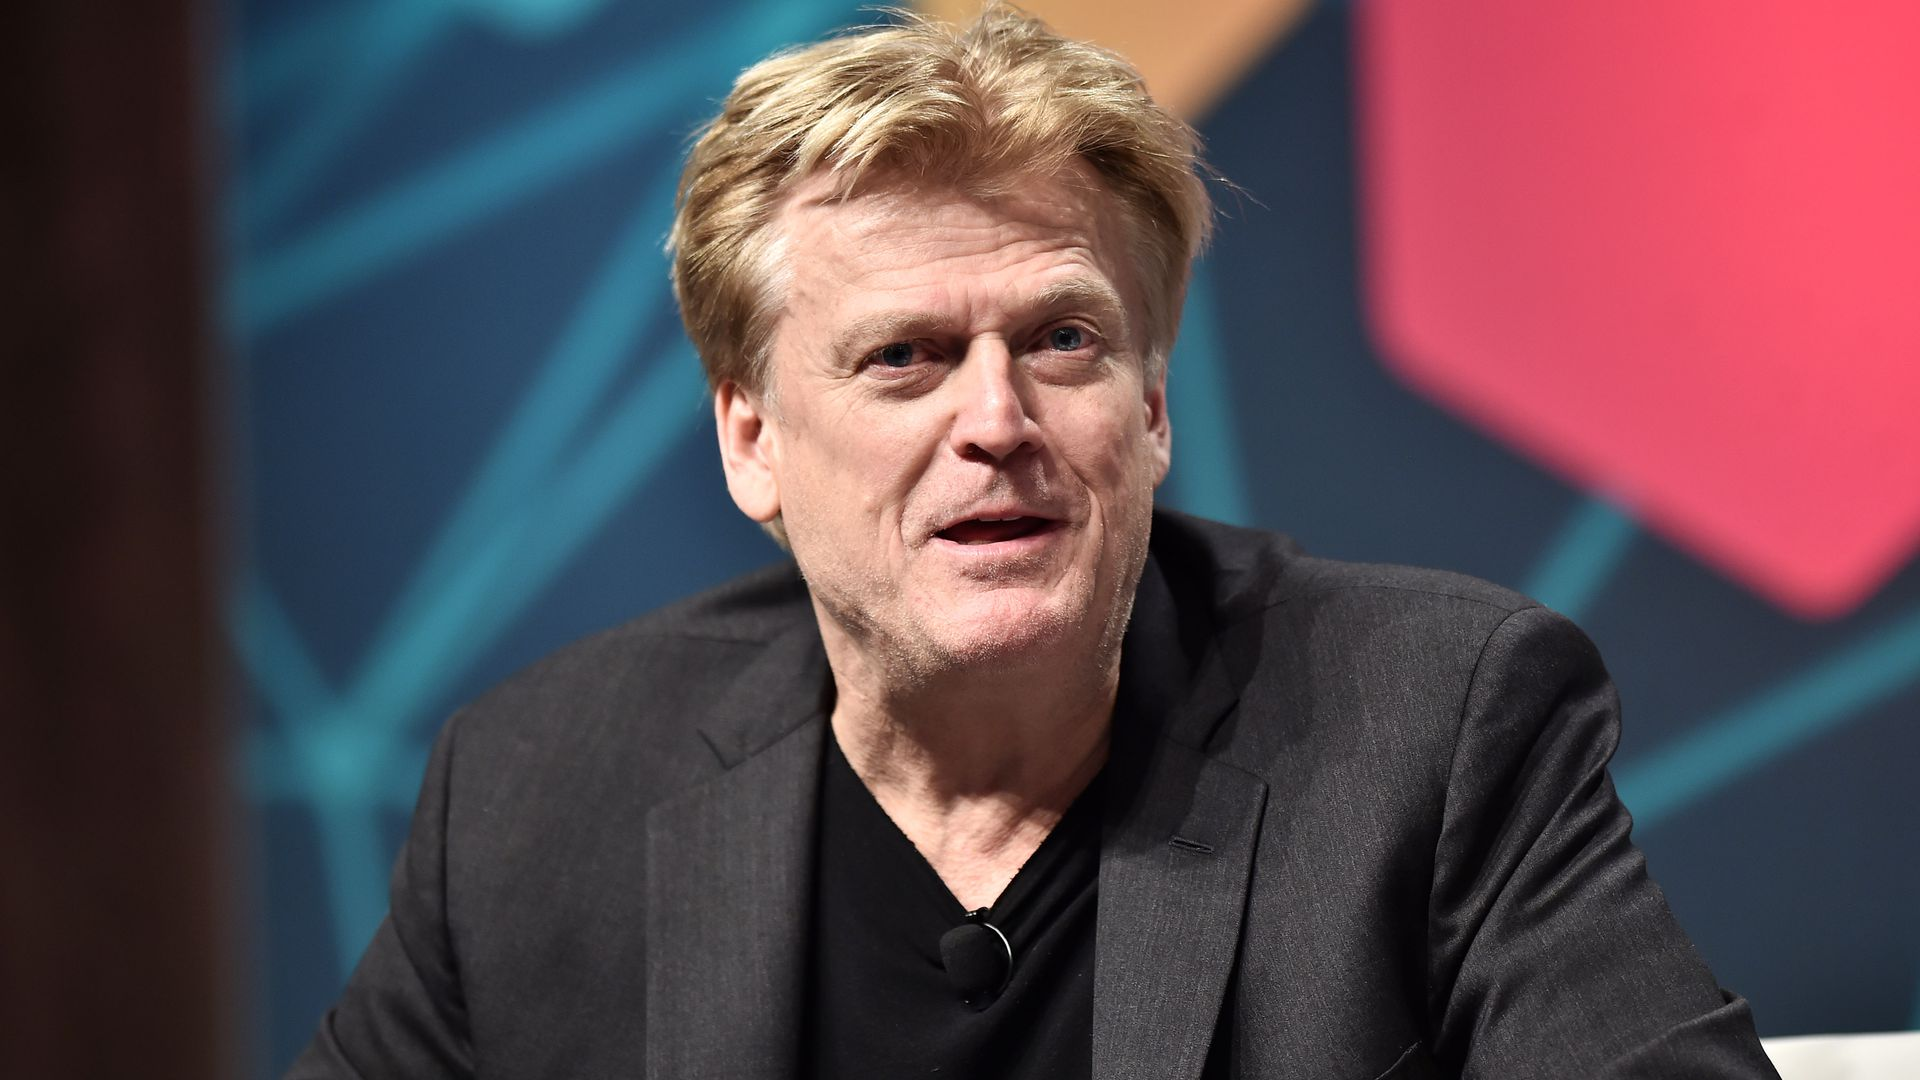 Overstock CEO resigns after disclosing romantic involvement with Russian agent